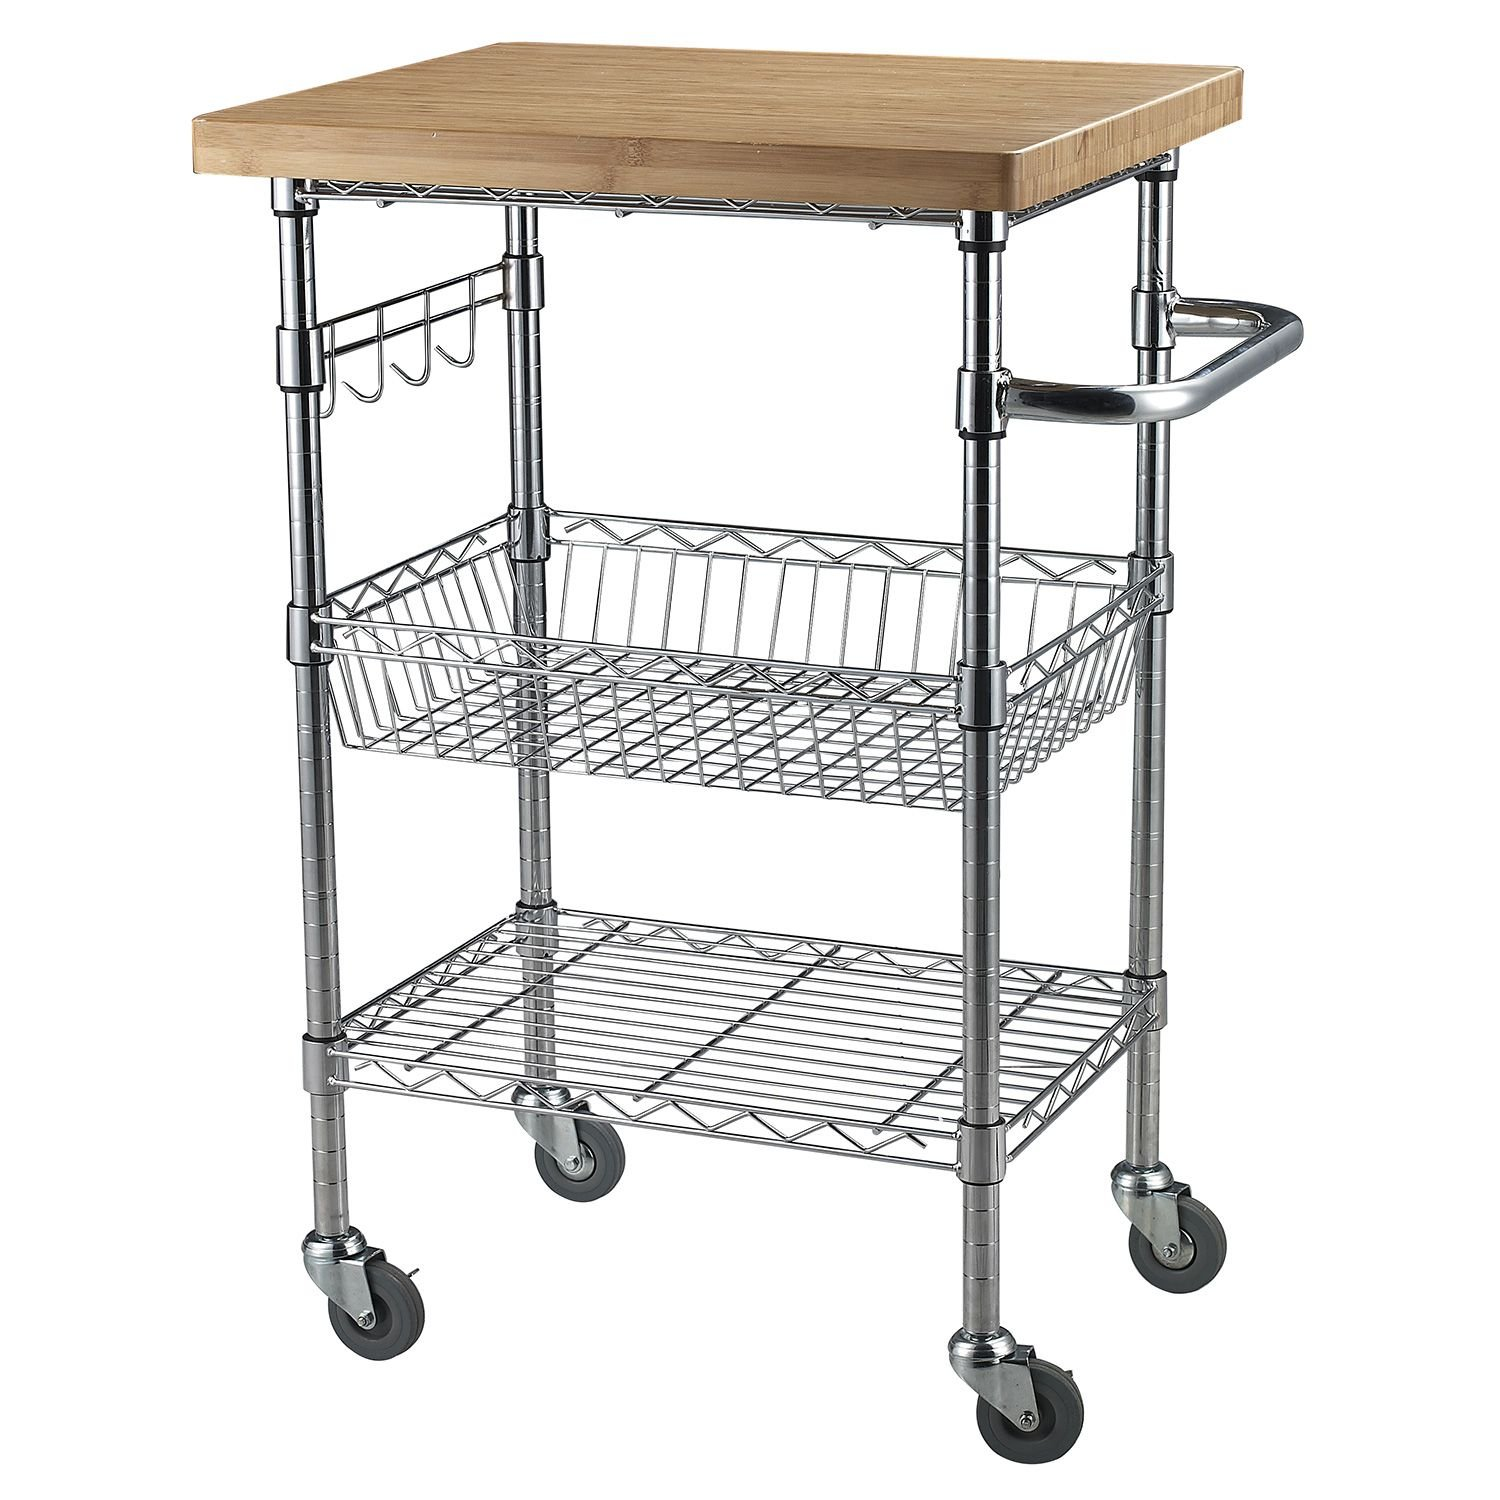 Copper Bamboo Kitchen Serving Cart Black Friday Deal 2020